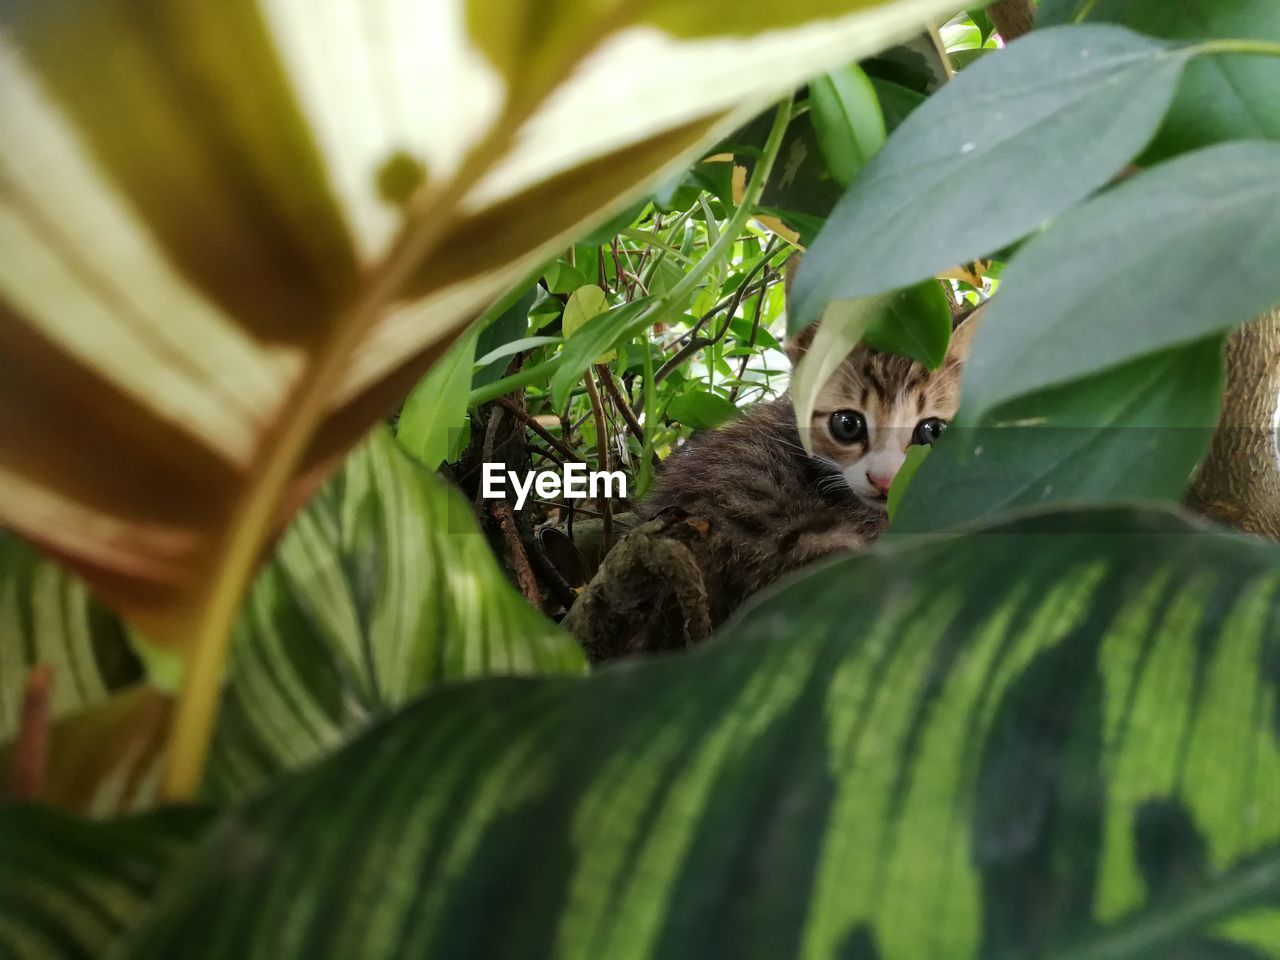 animal themes, animal, one animal, leaf, plant part, vertebrate, mammal, plant, selective focus, animal wildlife, animals in the wild, no people, green color, nature, domestic cat, cat, feline, portrait, looking at camera, day, outdoors, leaves, whisker